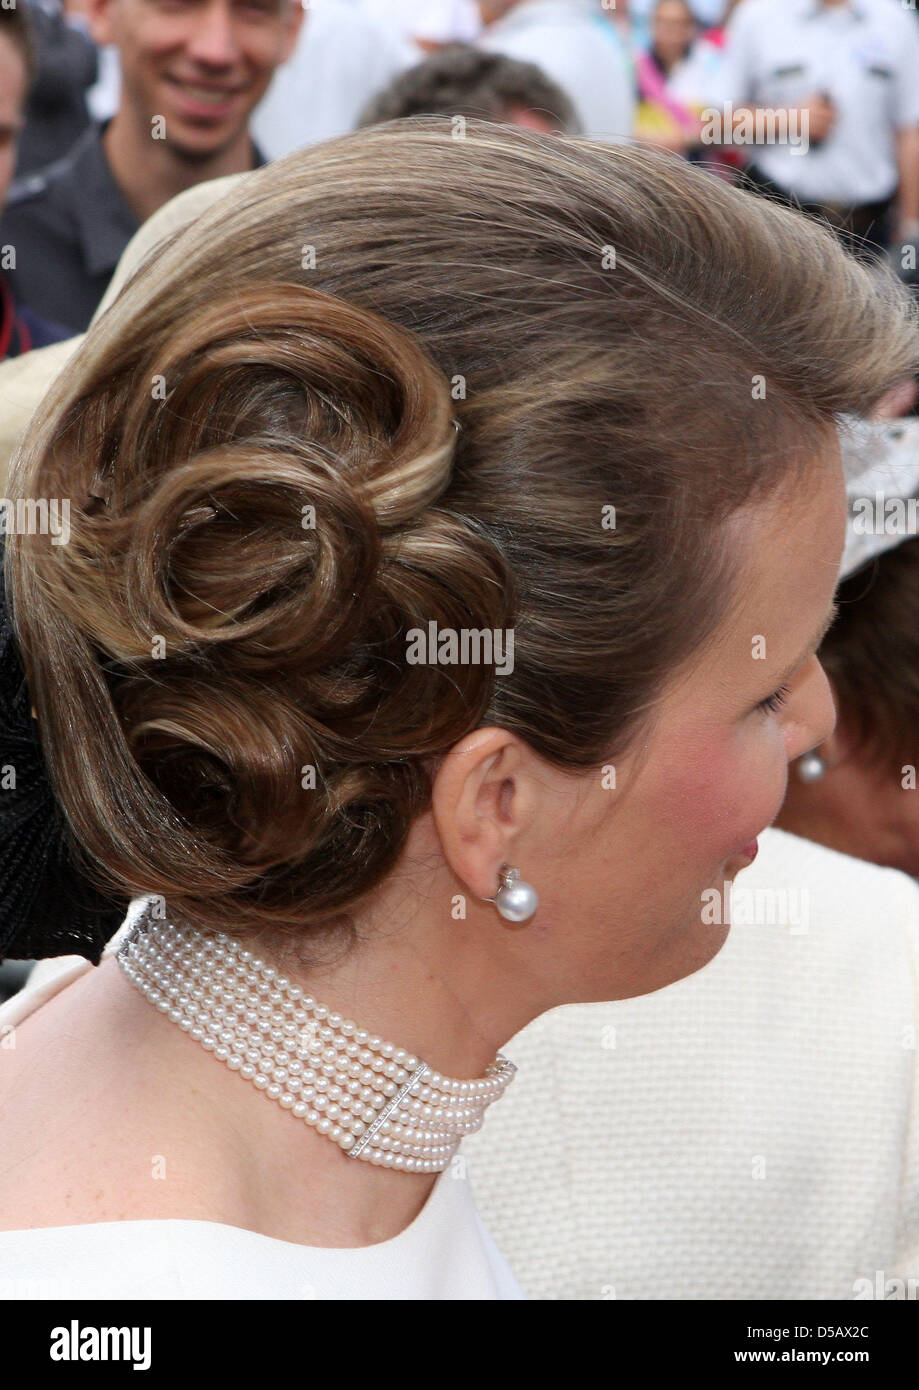 Hairstyle Of Crown Princess Mathilde Of Belgium Seen While She Stock